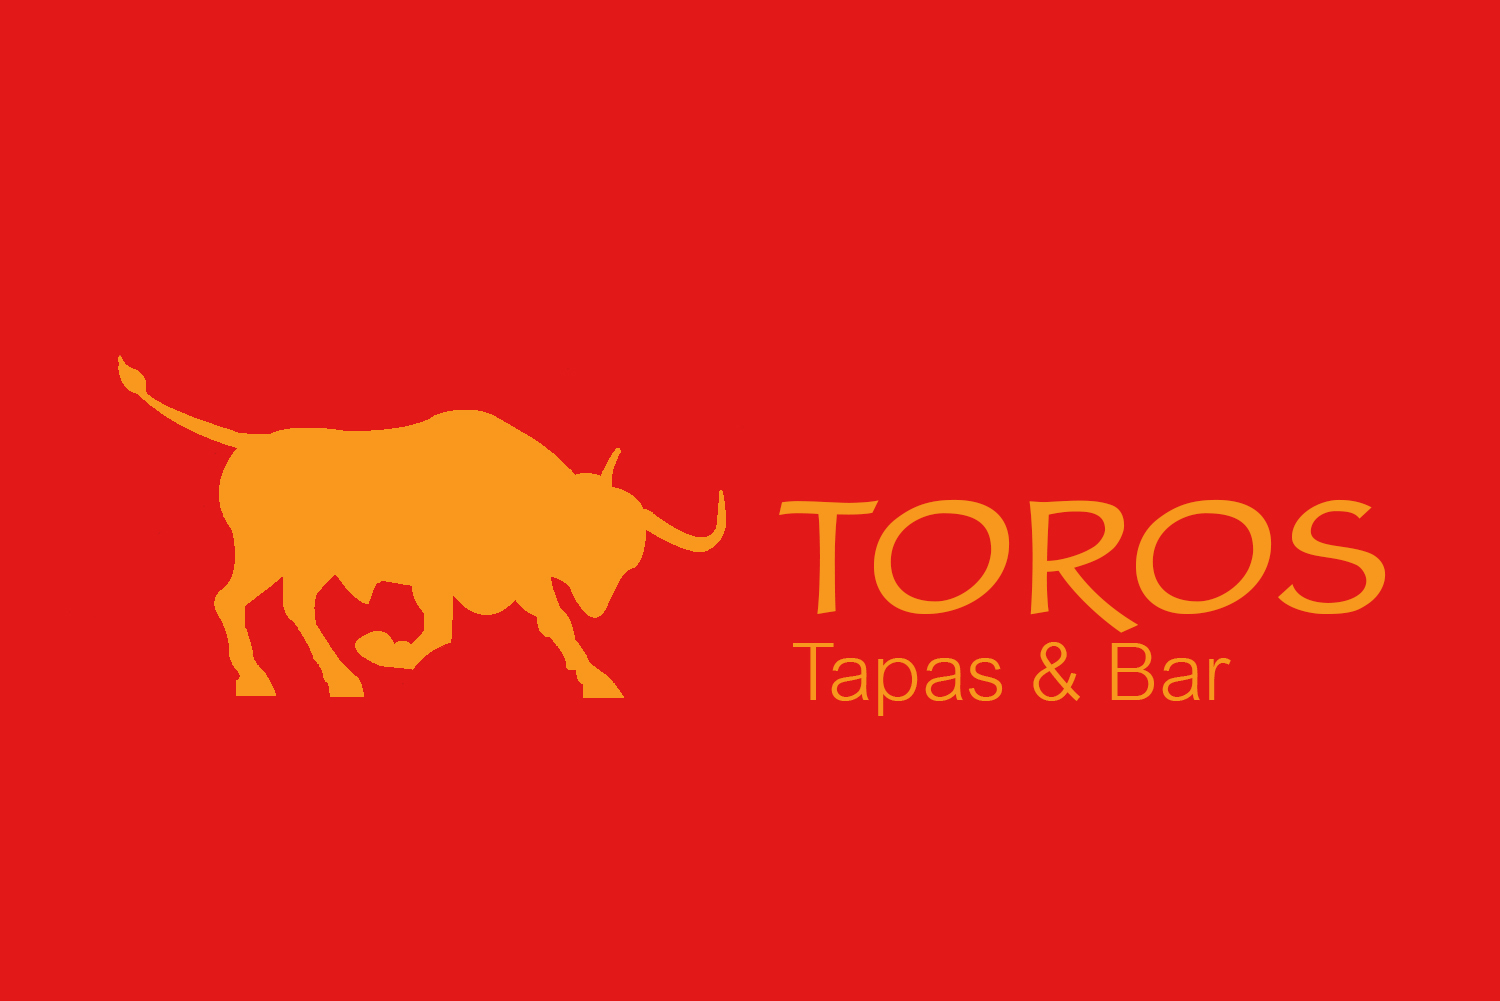 Toros-Logo-Orange-Red-1500x1001.jpg